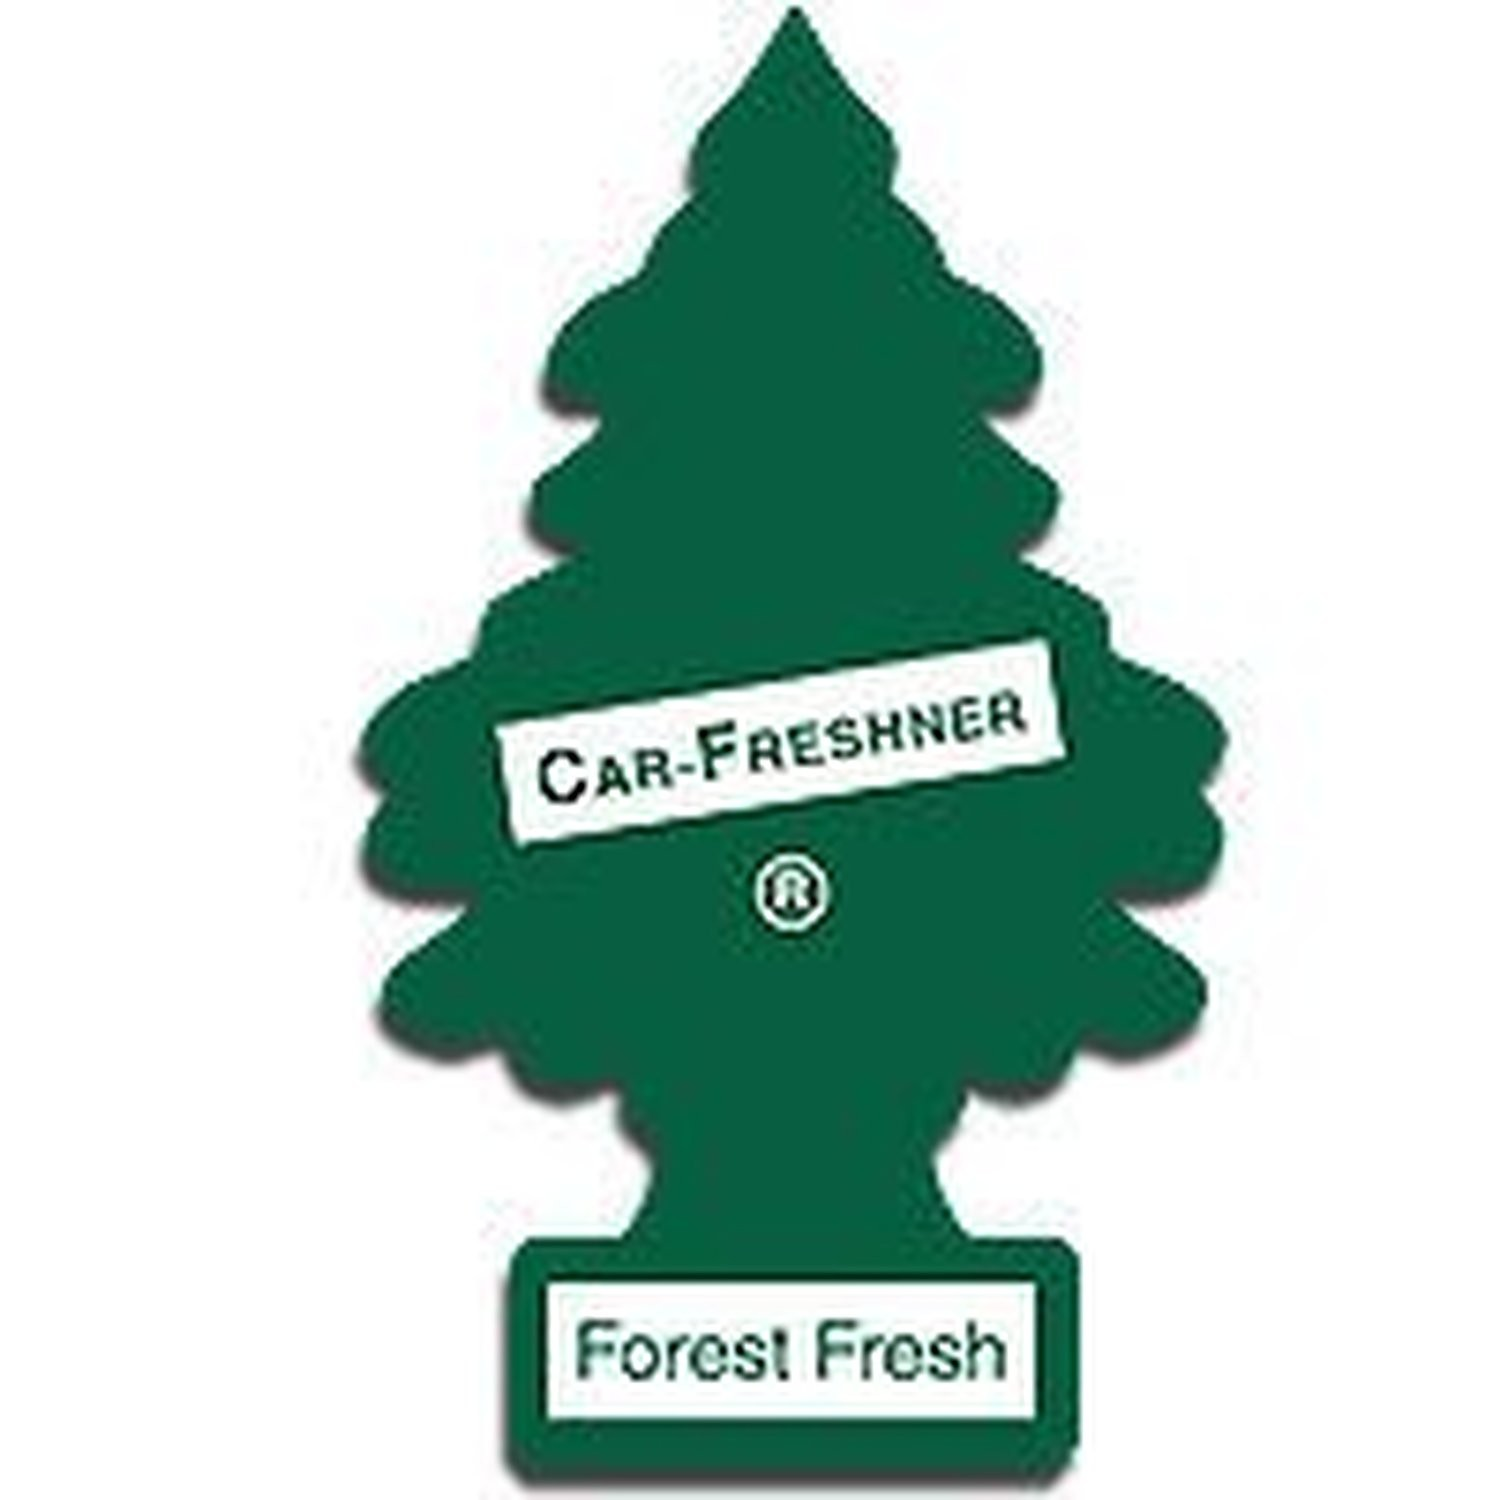 AoE Performance Magic Tree Car Air Freshener Duo Gift Pack Forest Fresh And Lime